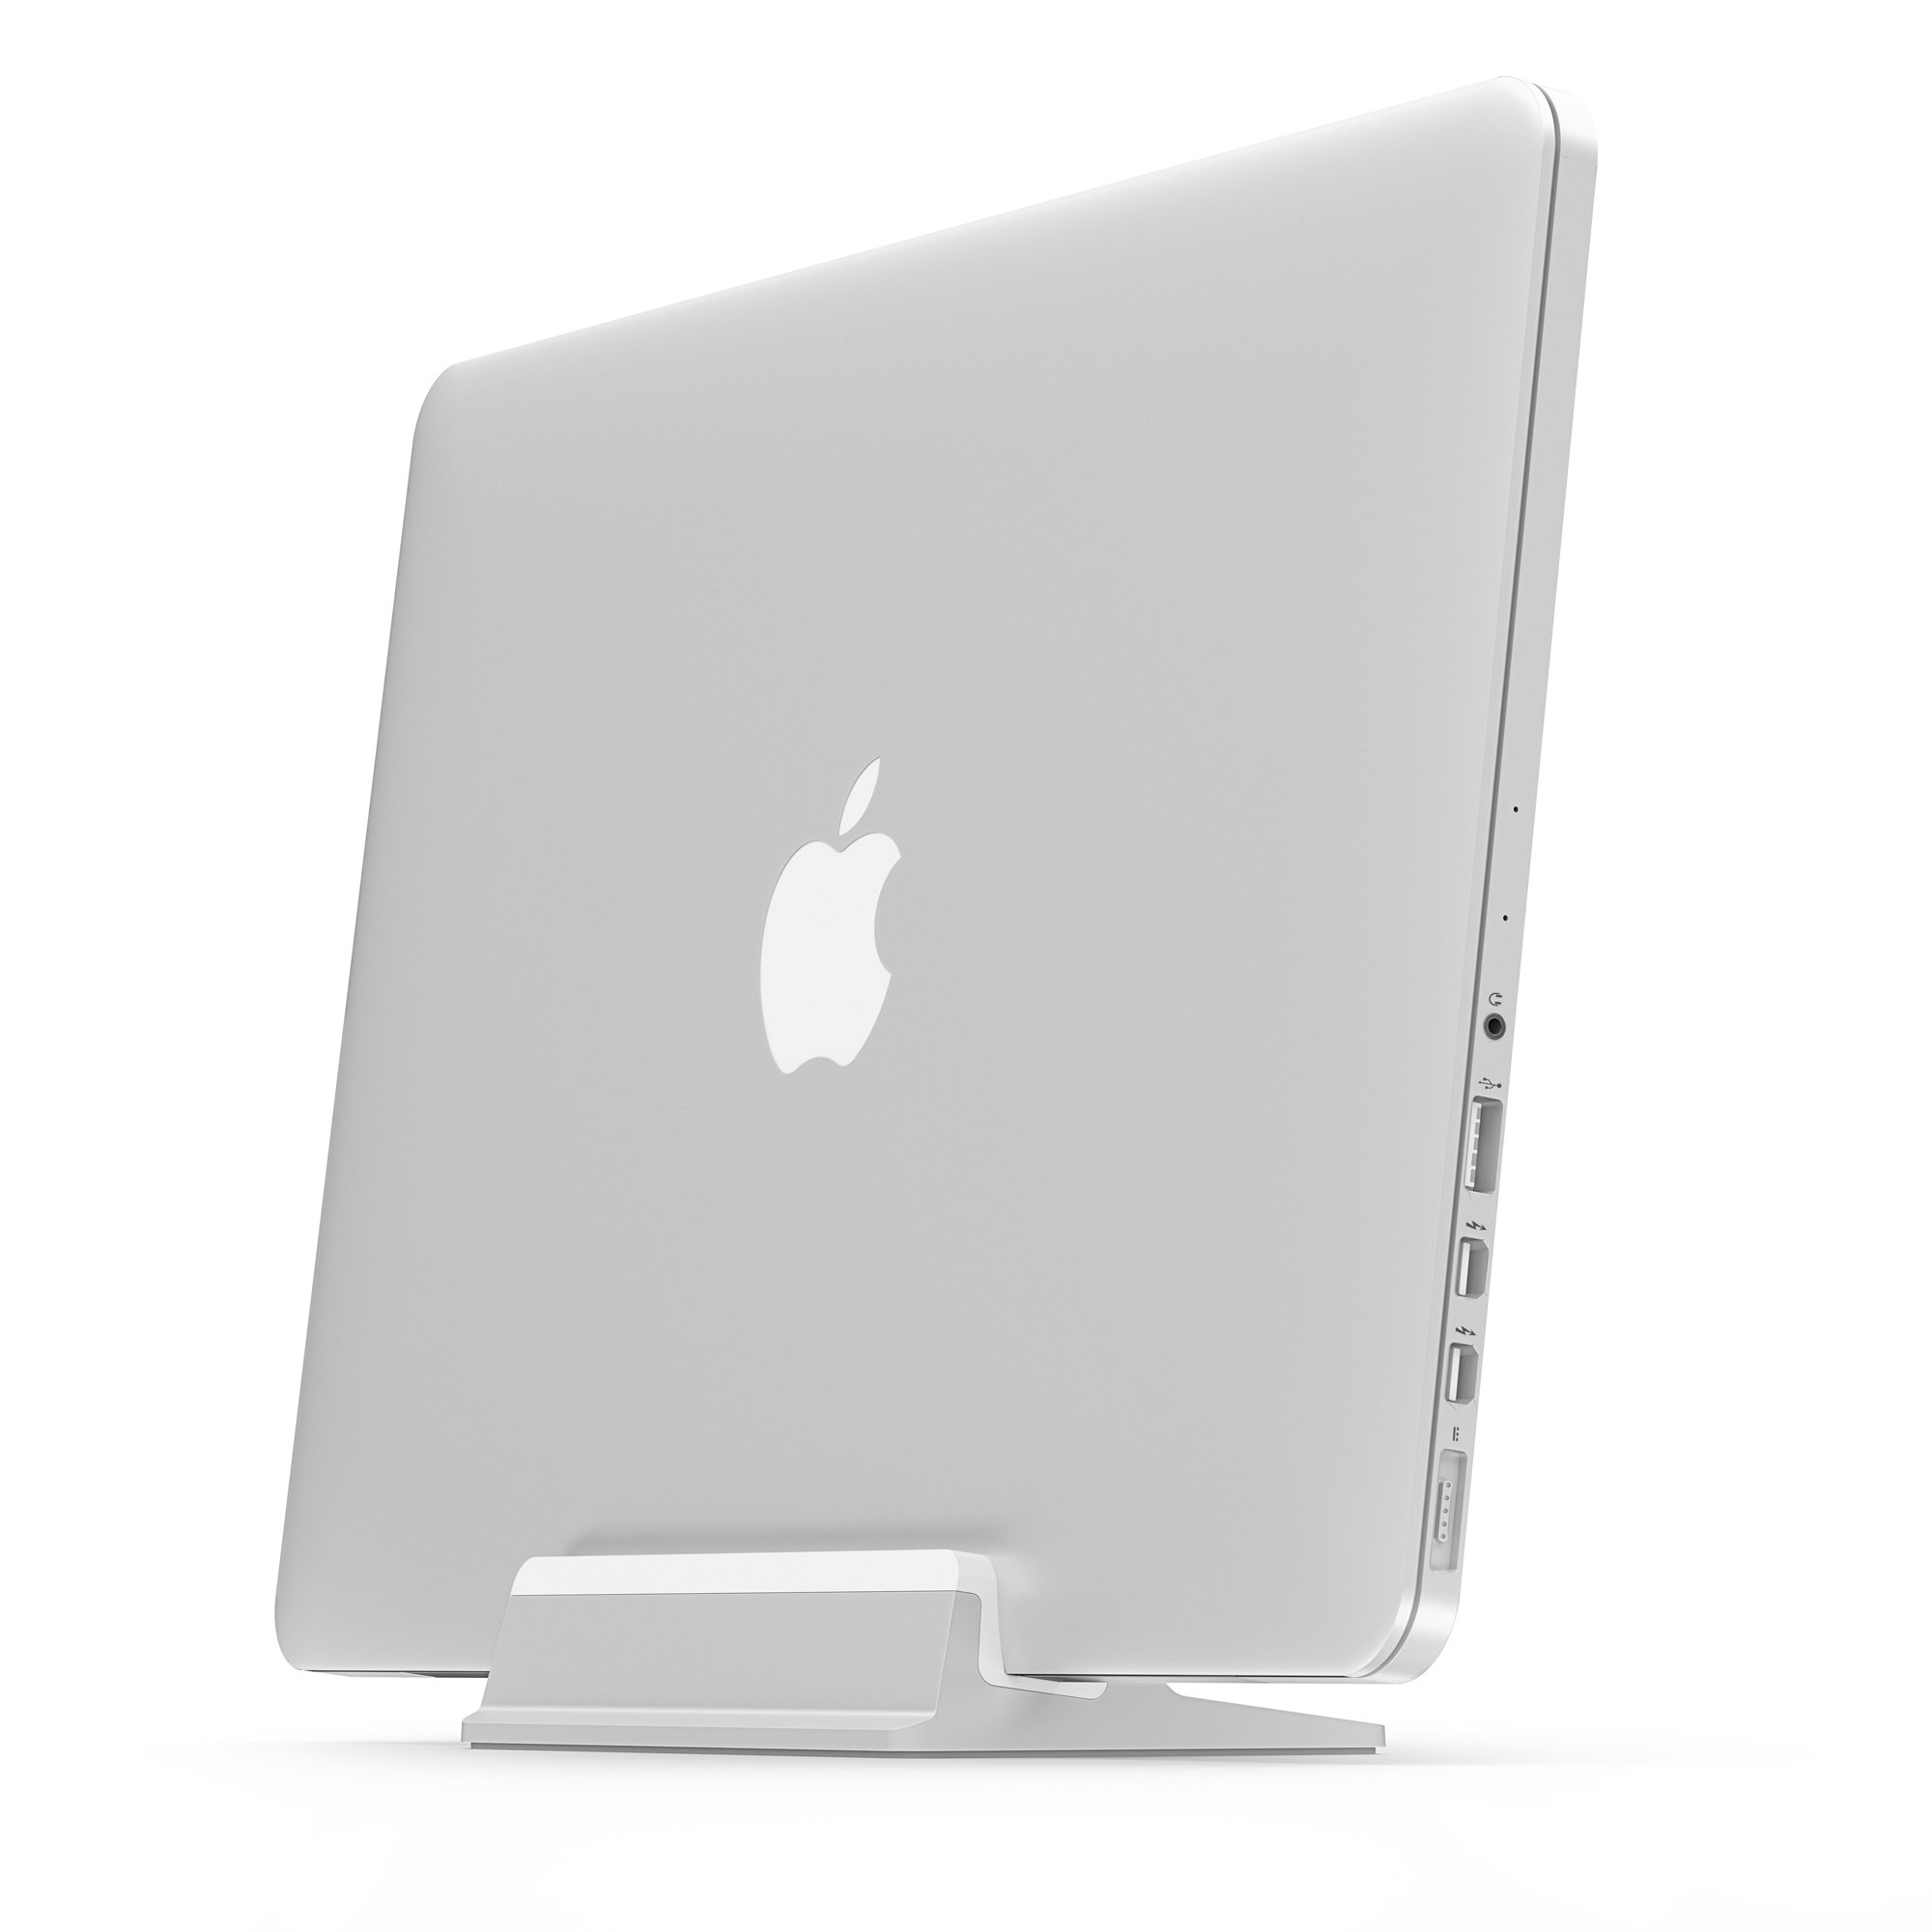 UPPERCASE KRADL Pro Small Profile Aluminum Vertical Stand for Retina MacBook Pro 13'' or 15'' (2012 to 2015 Releases), Silver/White